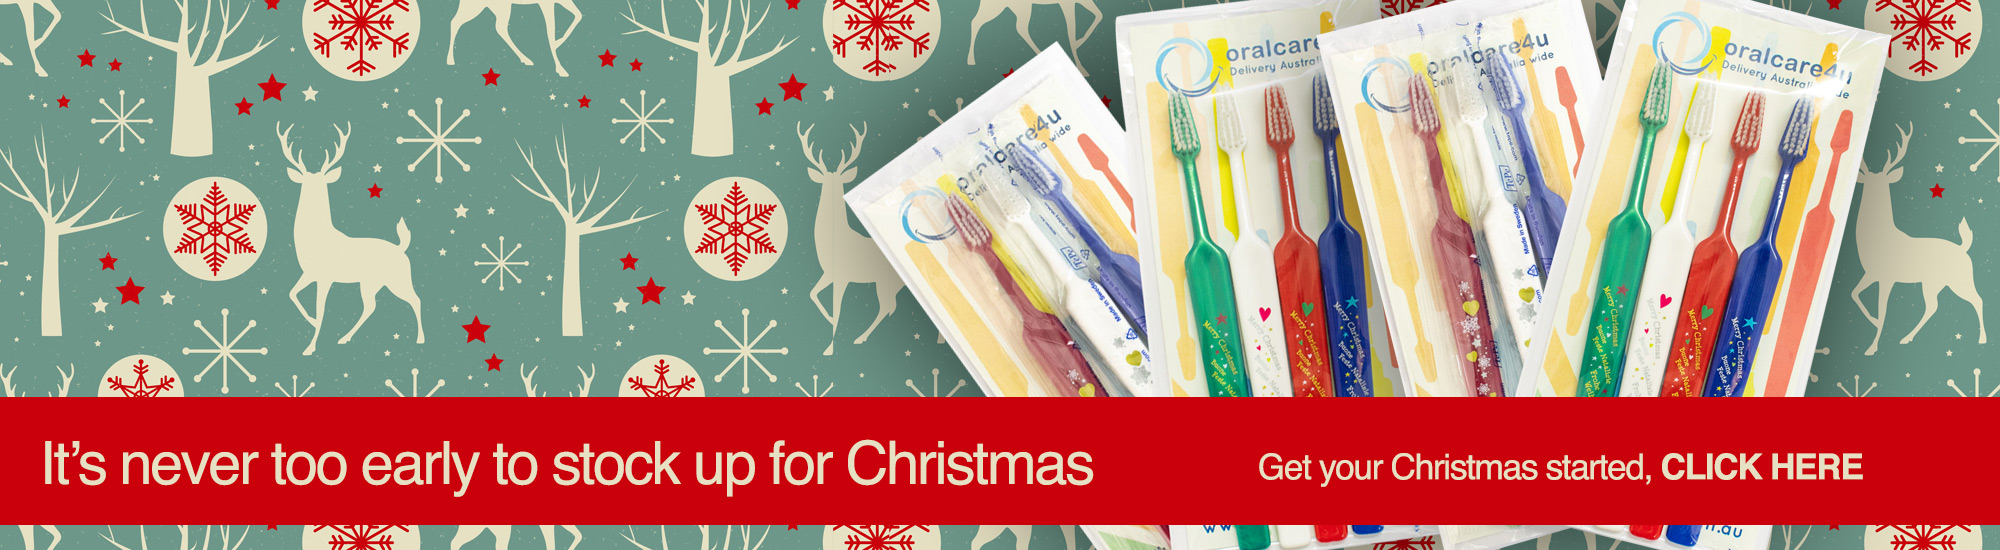 christmas-toothbrushes